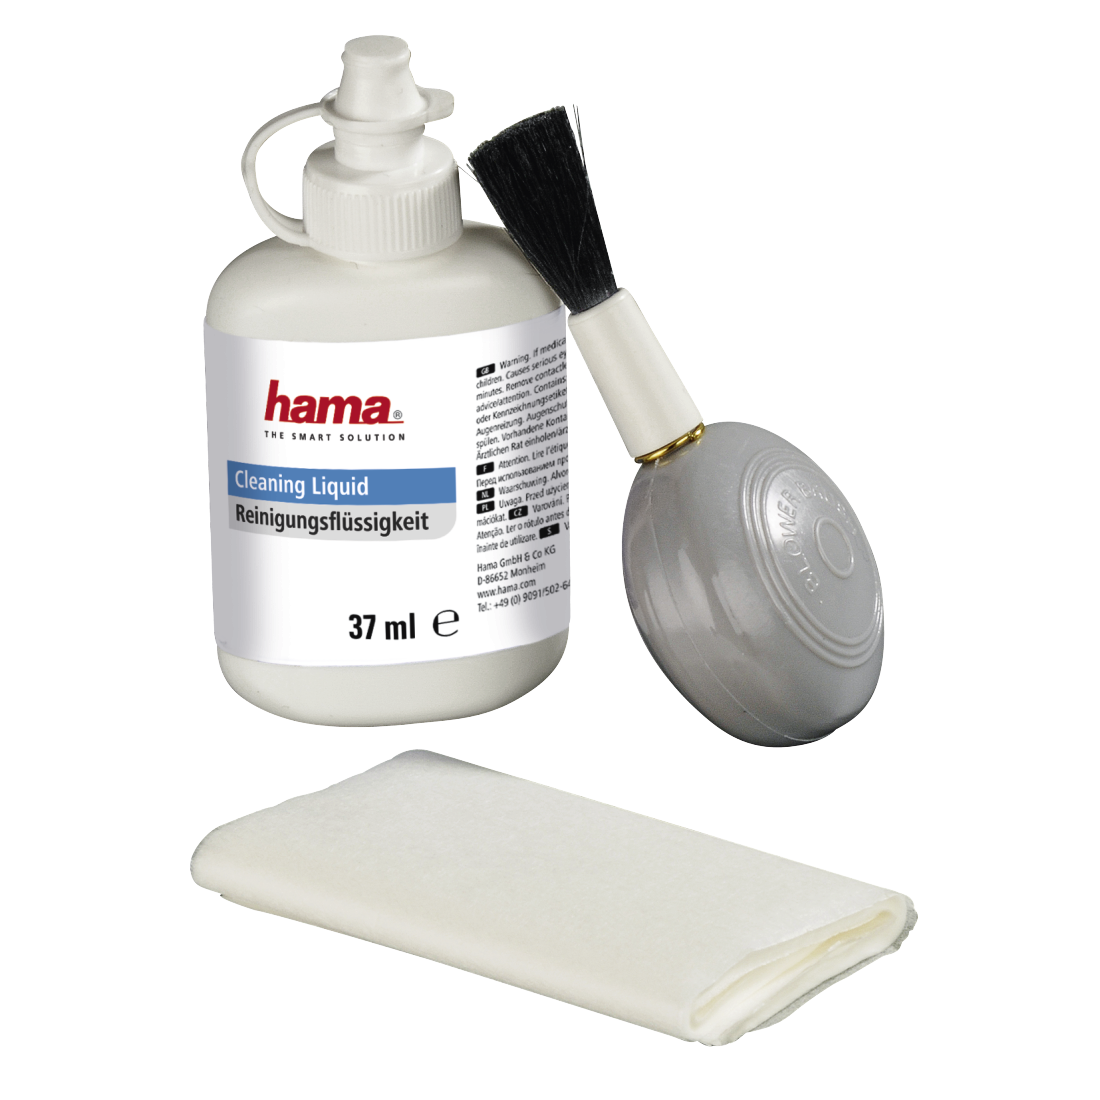 abx High-Res Image - Hama, Optik 3-Piece Cleaning Set